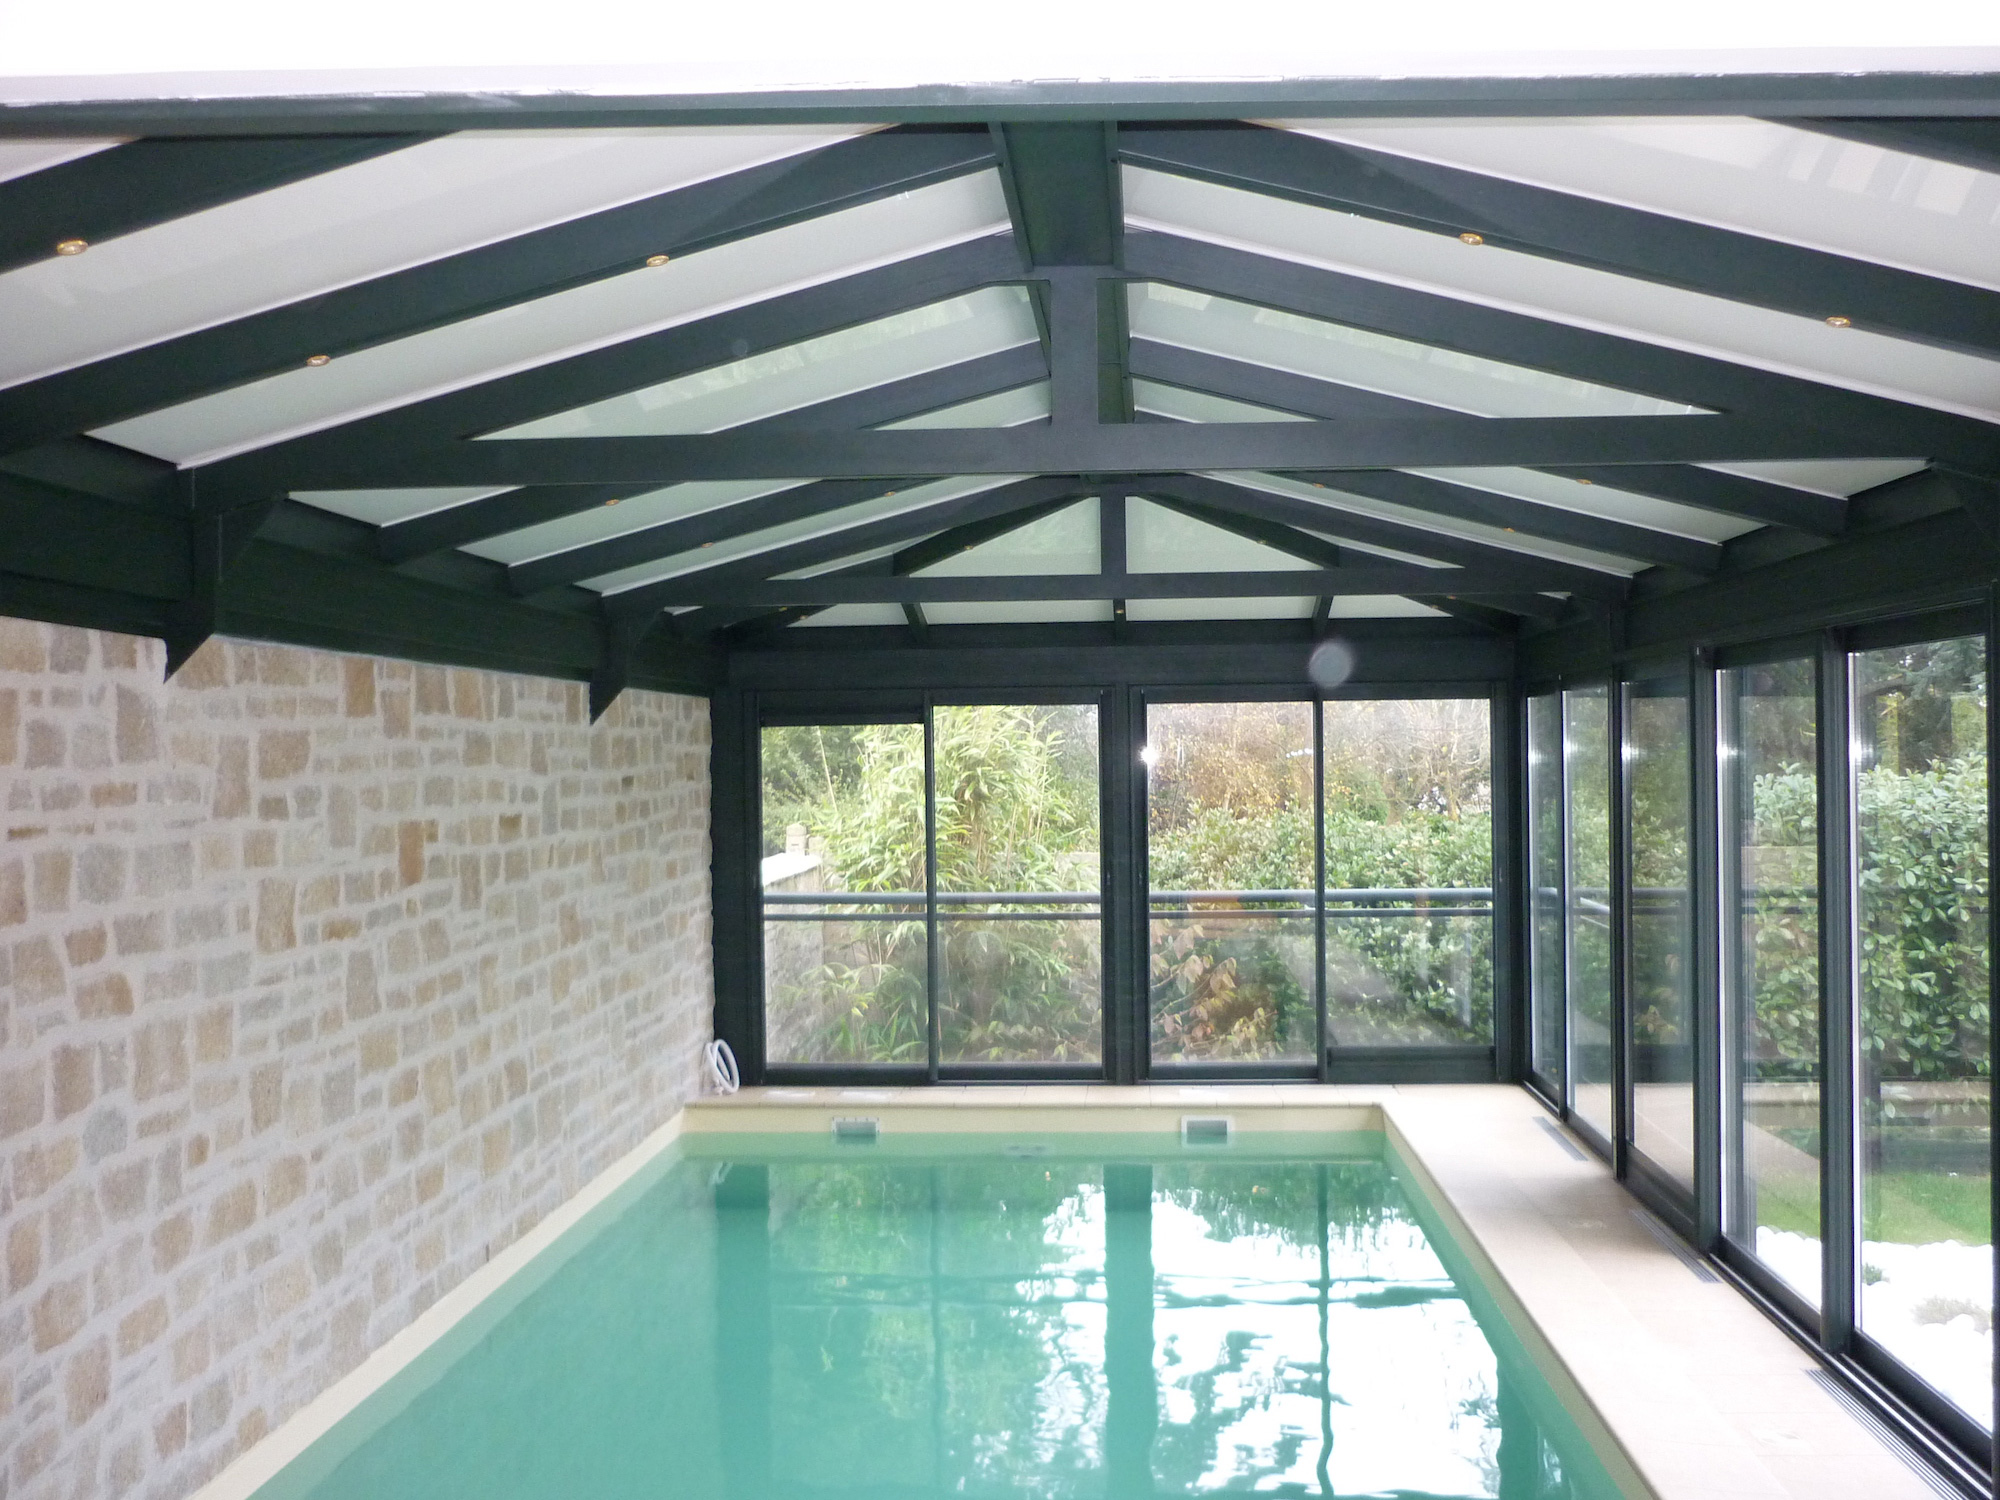 Veranda piscine design fillonneau for Veranda sur piscine